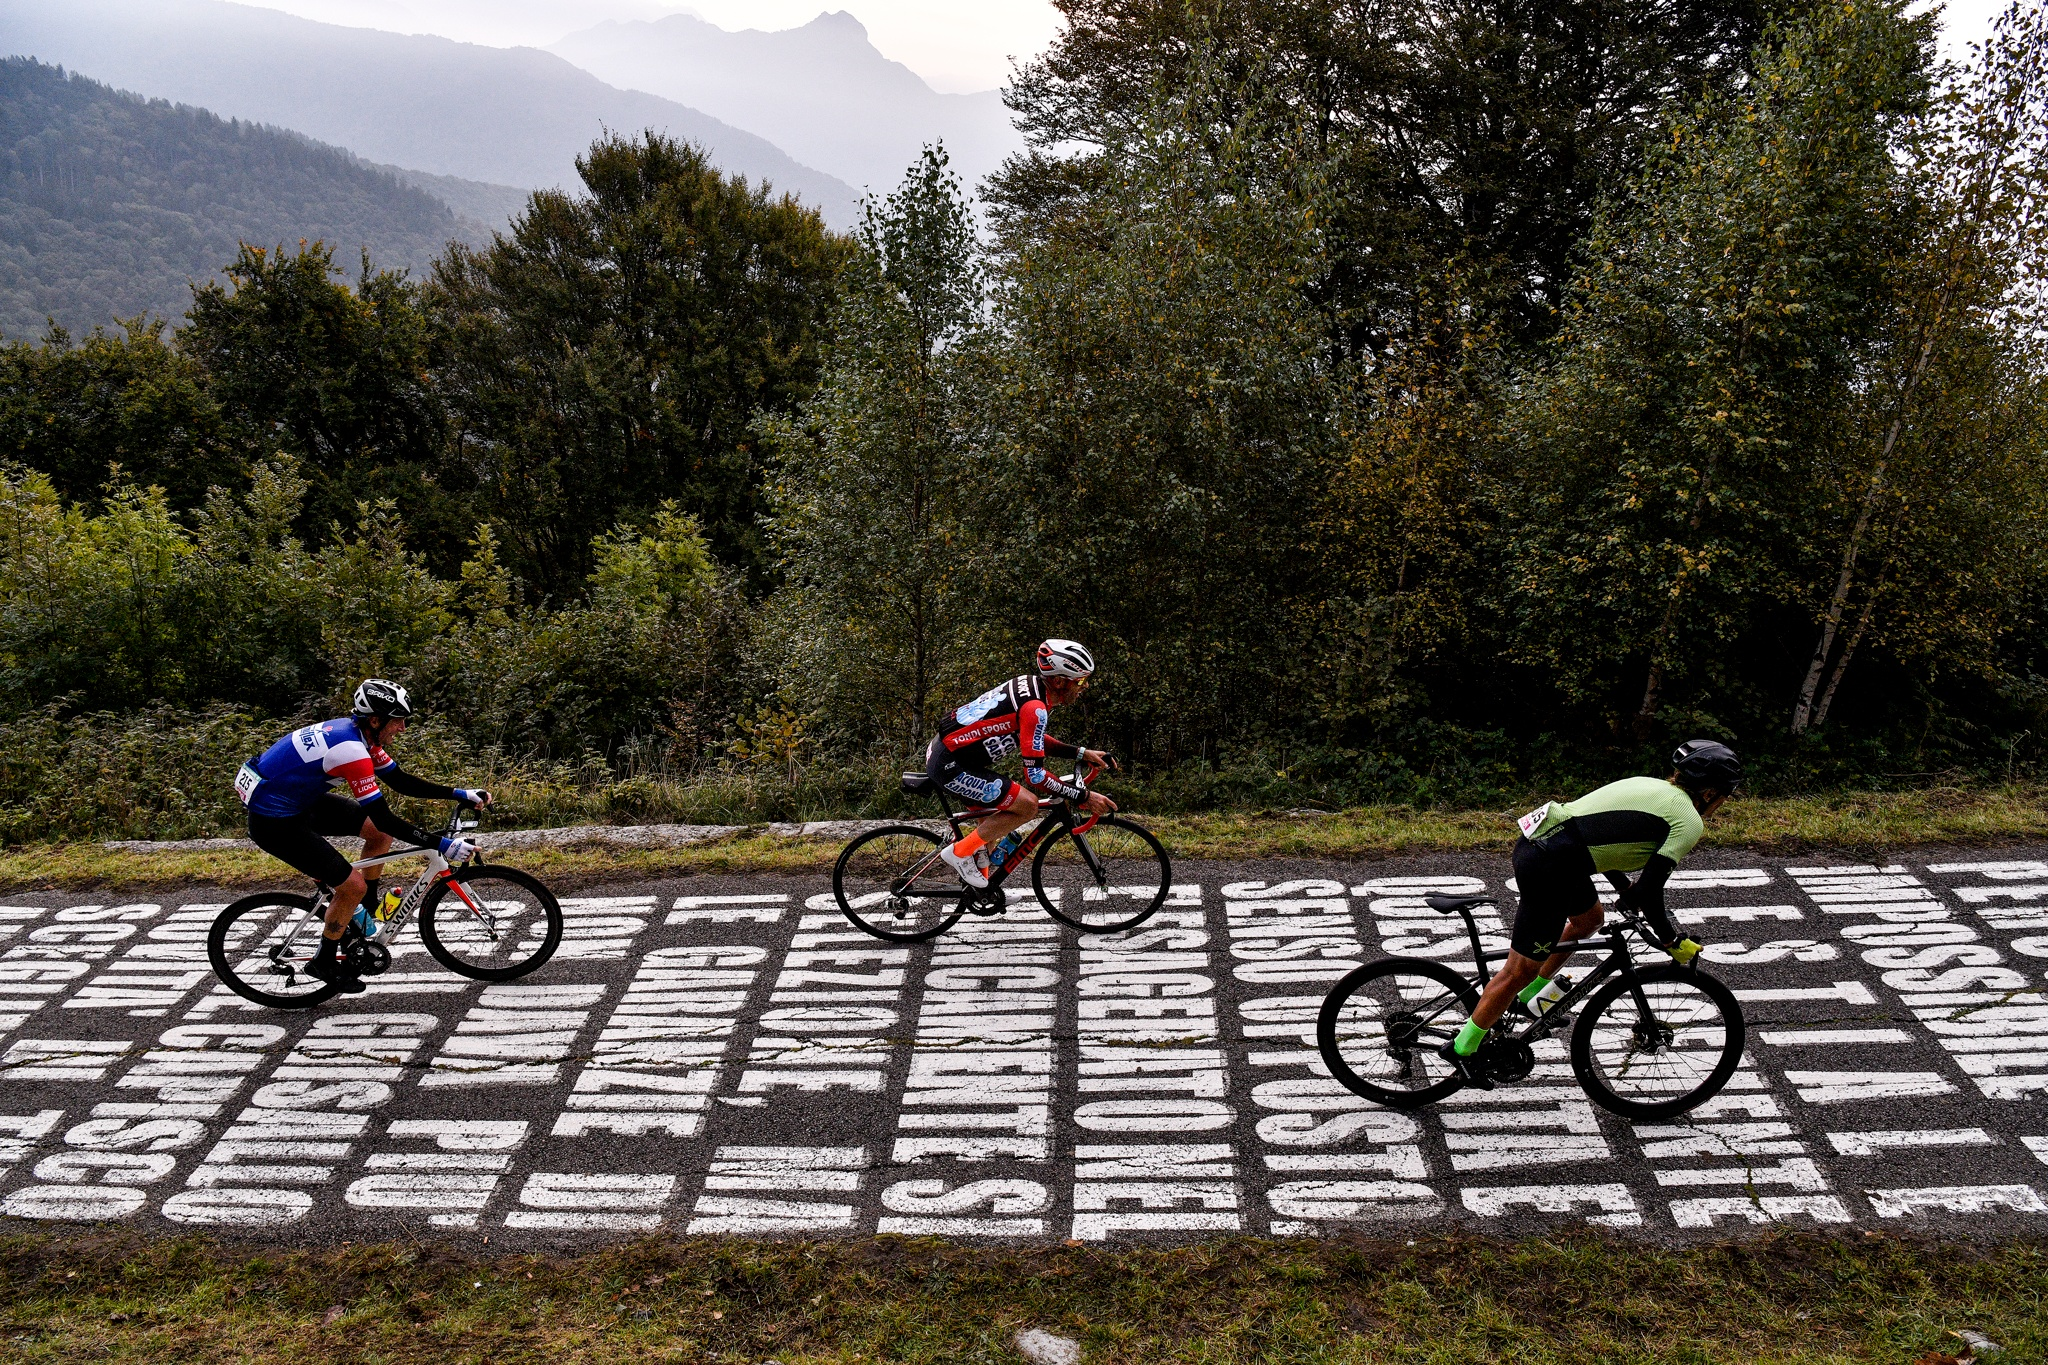 Gran Fondo Il Lombardia: 2,500 sportive riders on legendary roads